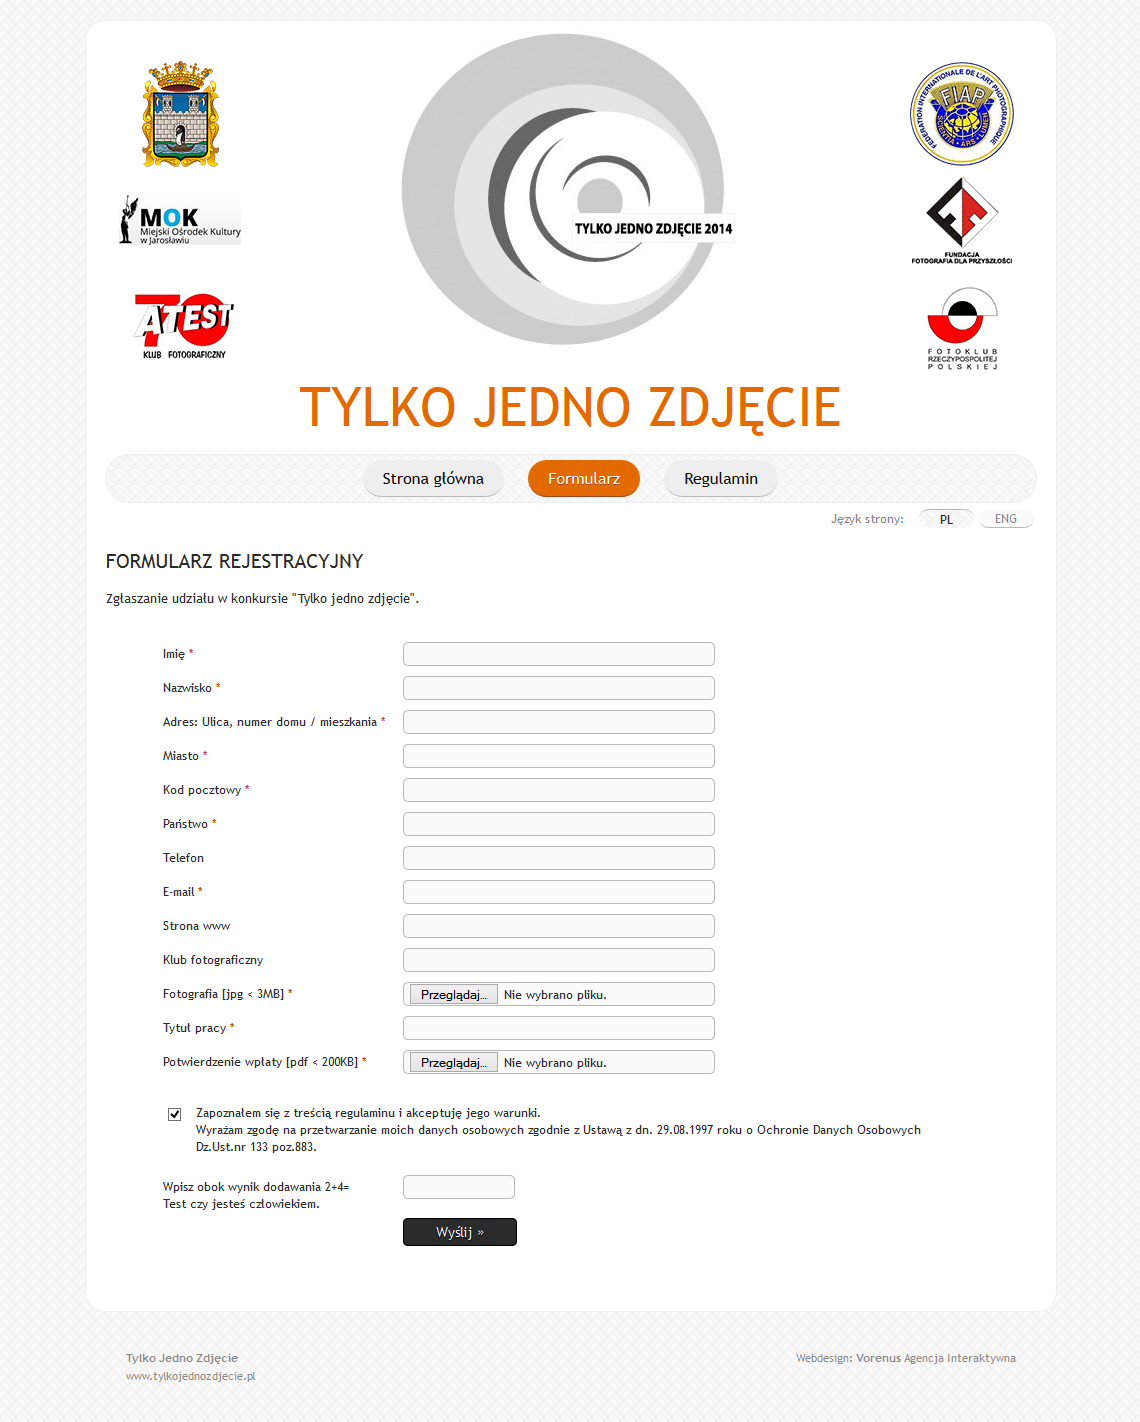 Just One Photo 2014 - Registration form